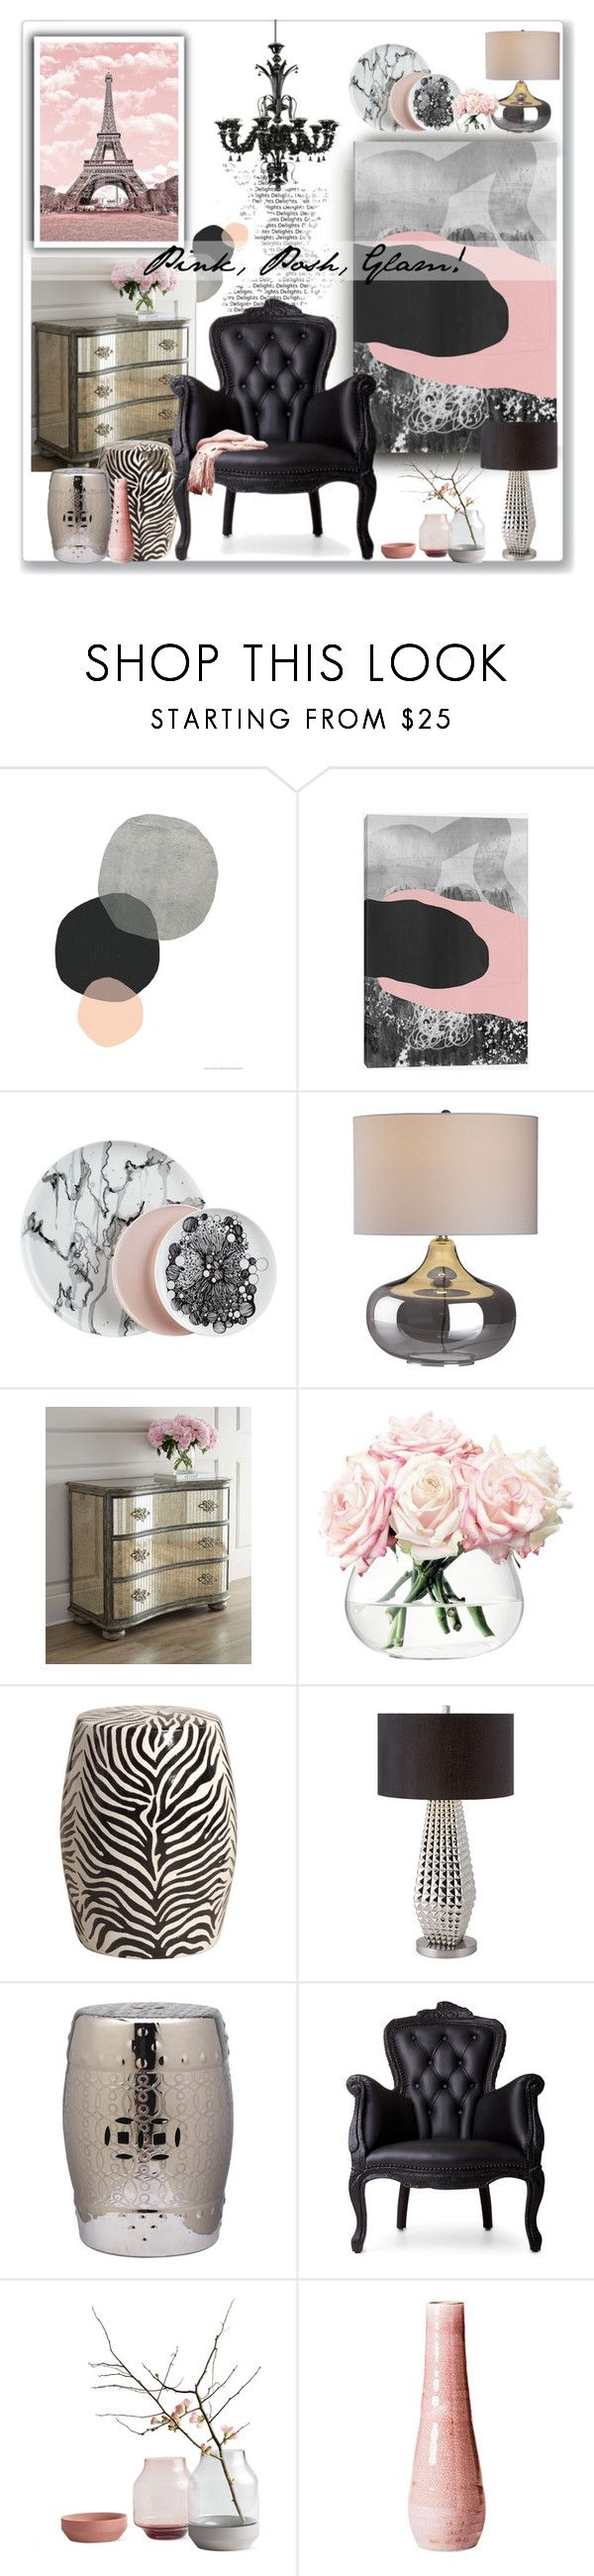 """Pink, Posh, Glam!"" by designsbylea on Polyvore featuring interior, interiors ..."